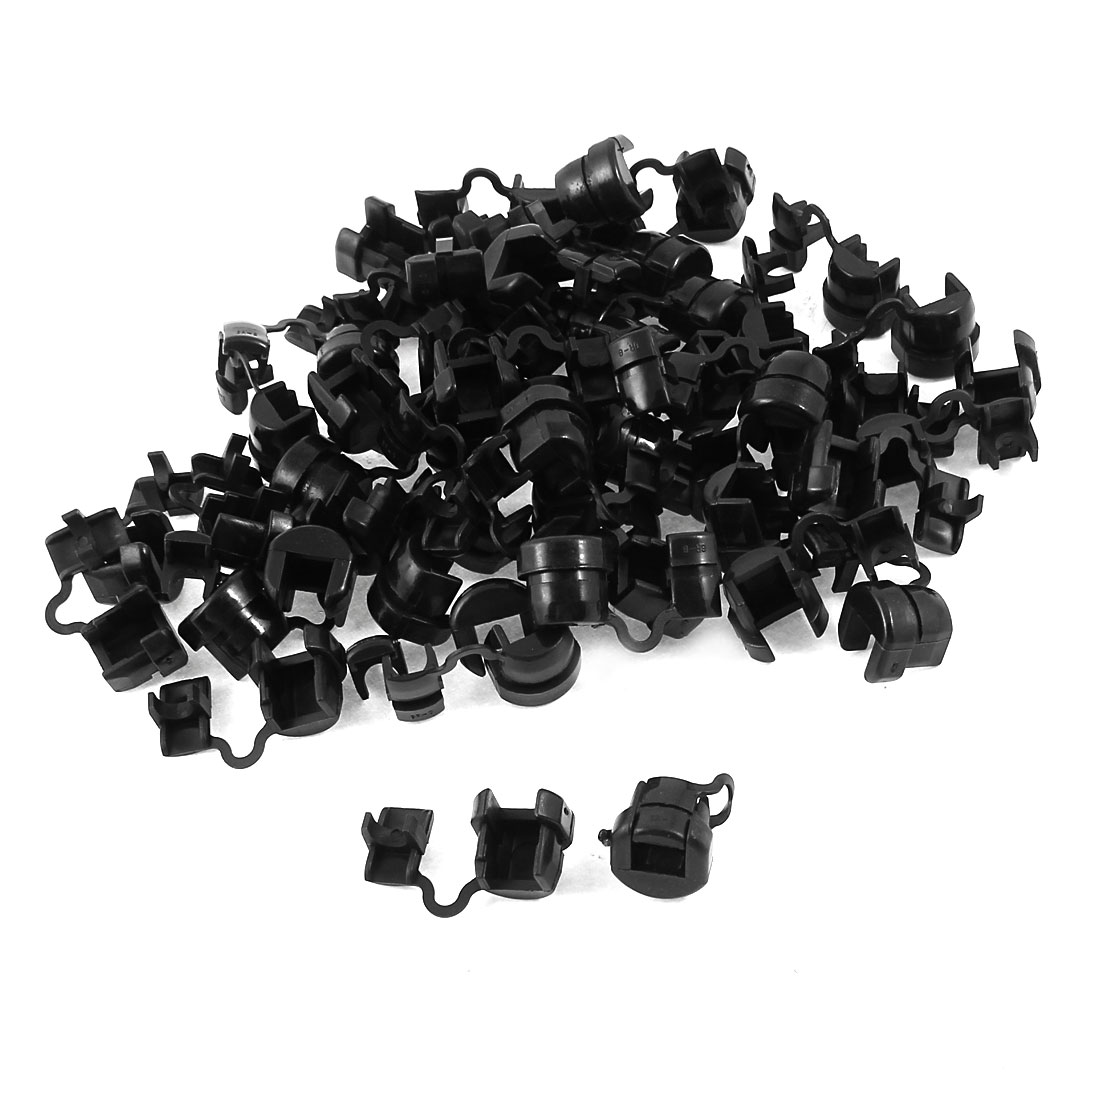 50 Pcs Black Wire Cord Protectors Strain Relief Bushing for 6mm Round Cables